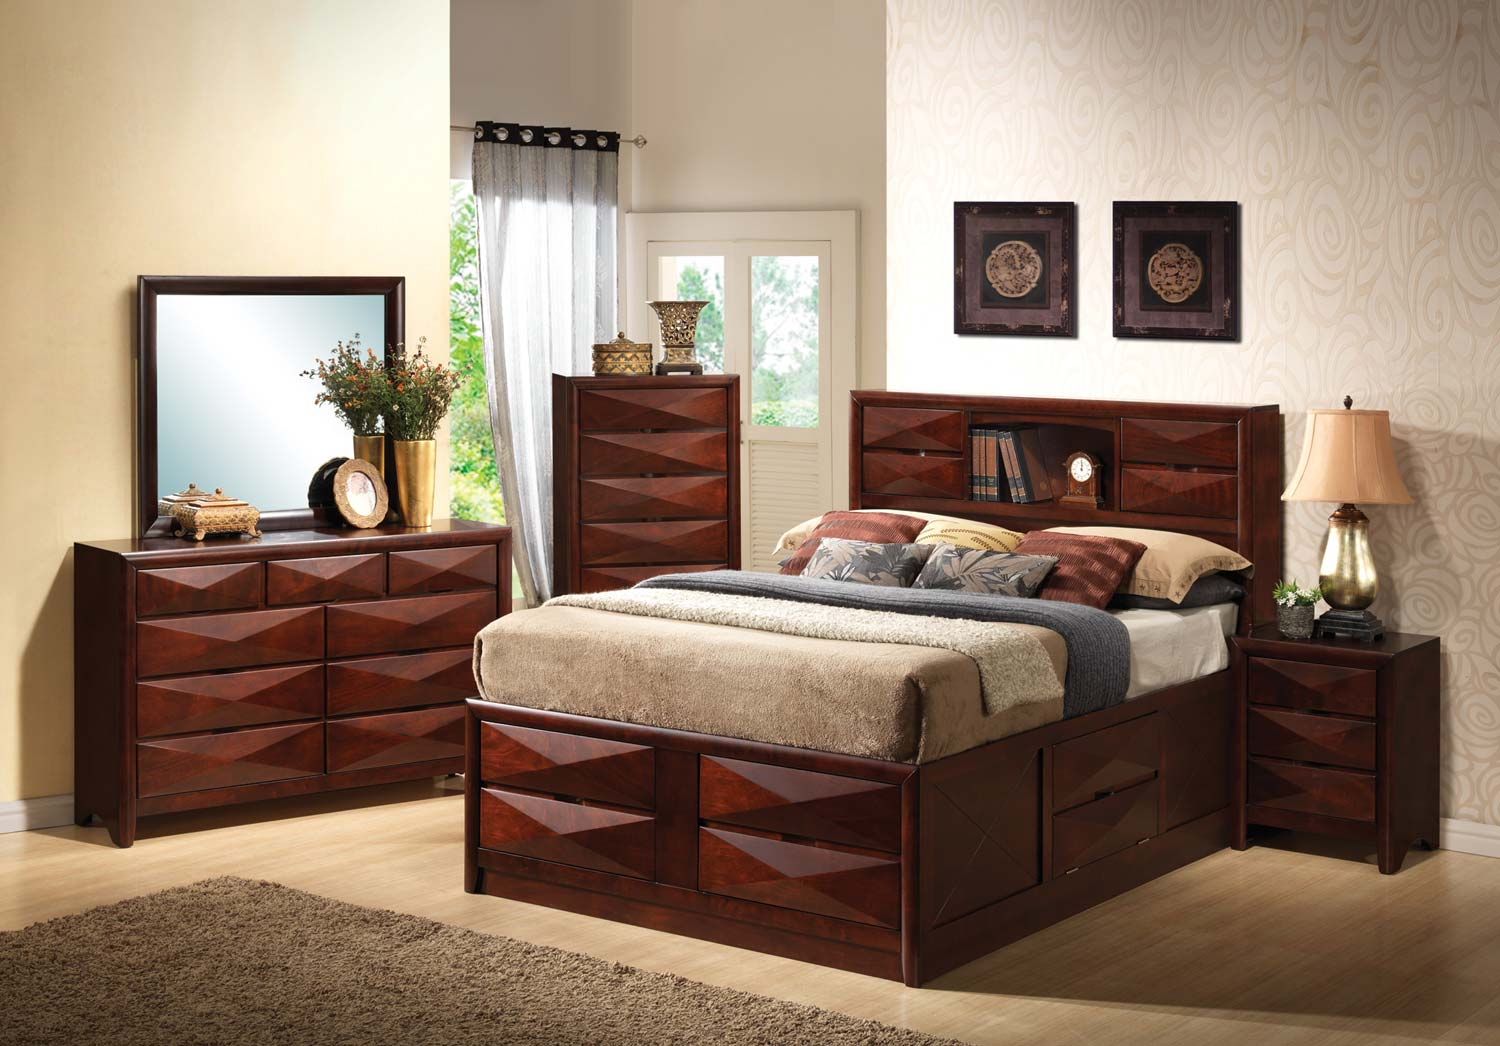 Coaster Bree Bookcase Storage Bedroom Set - Brown Cherry